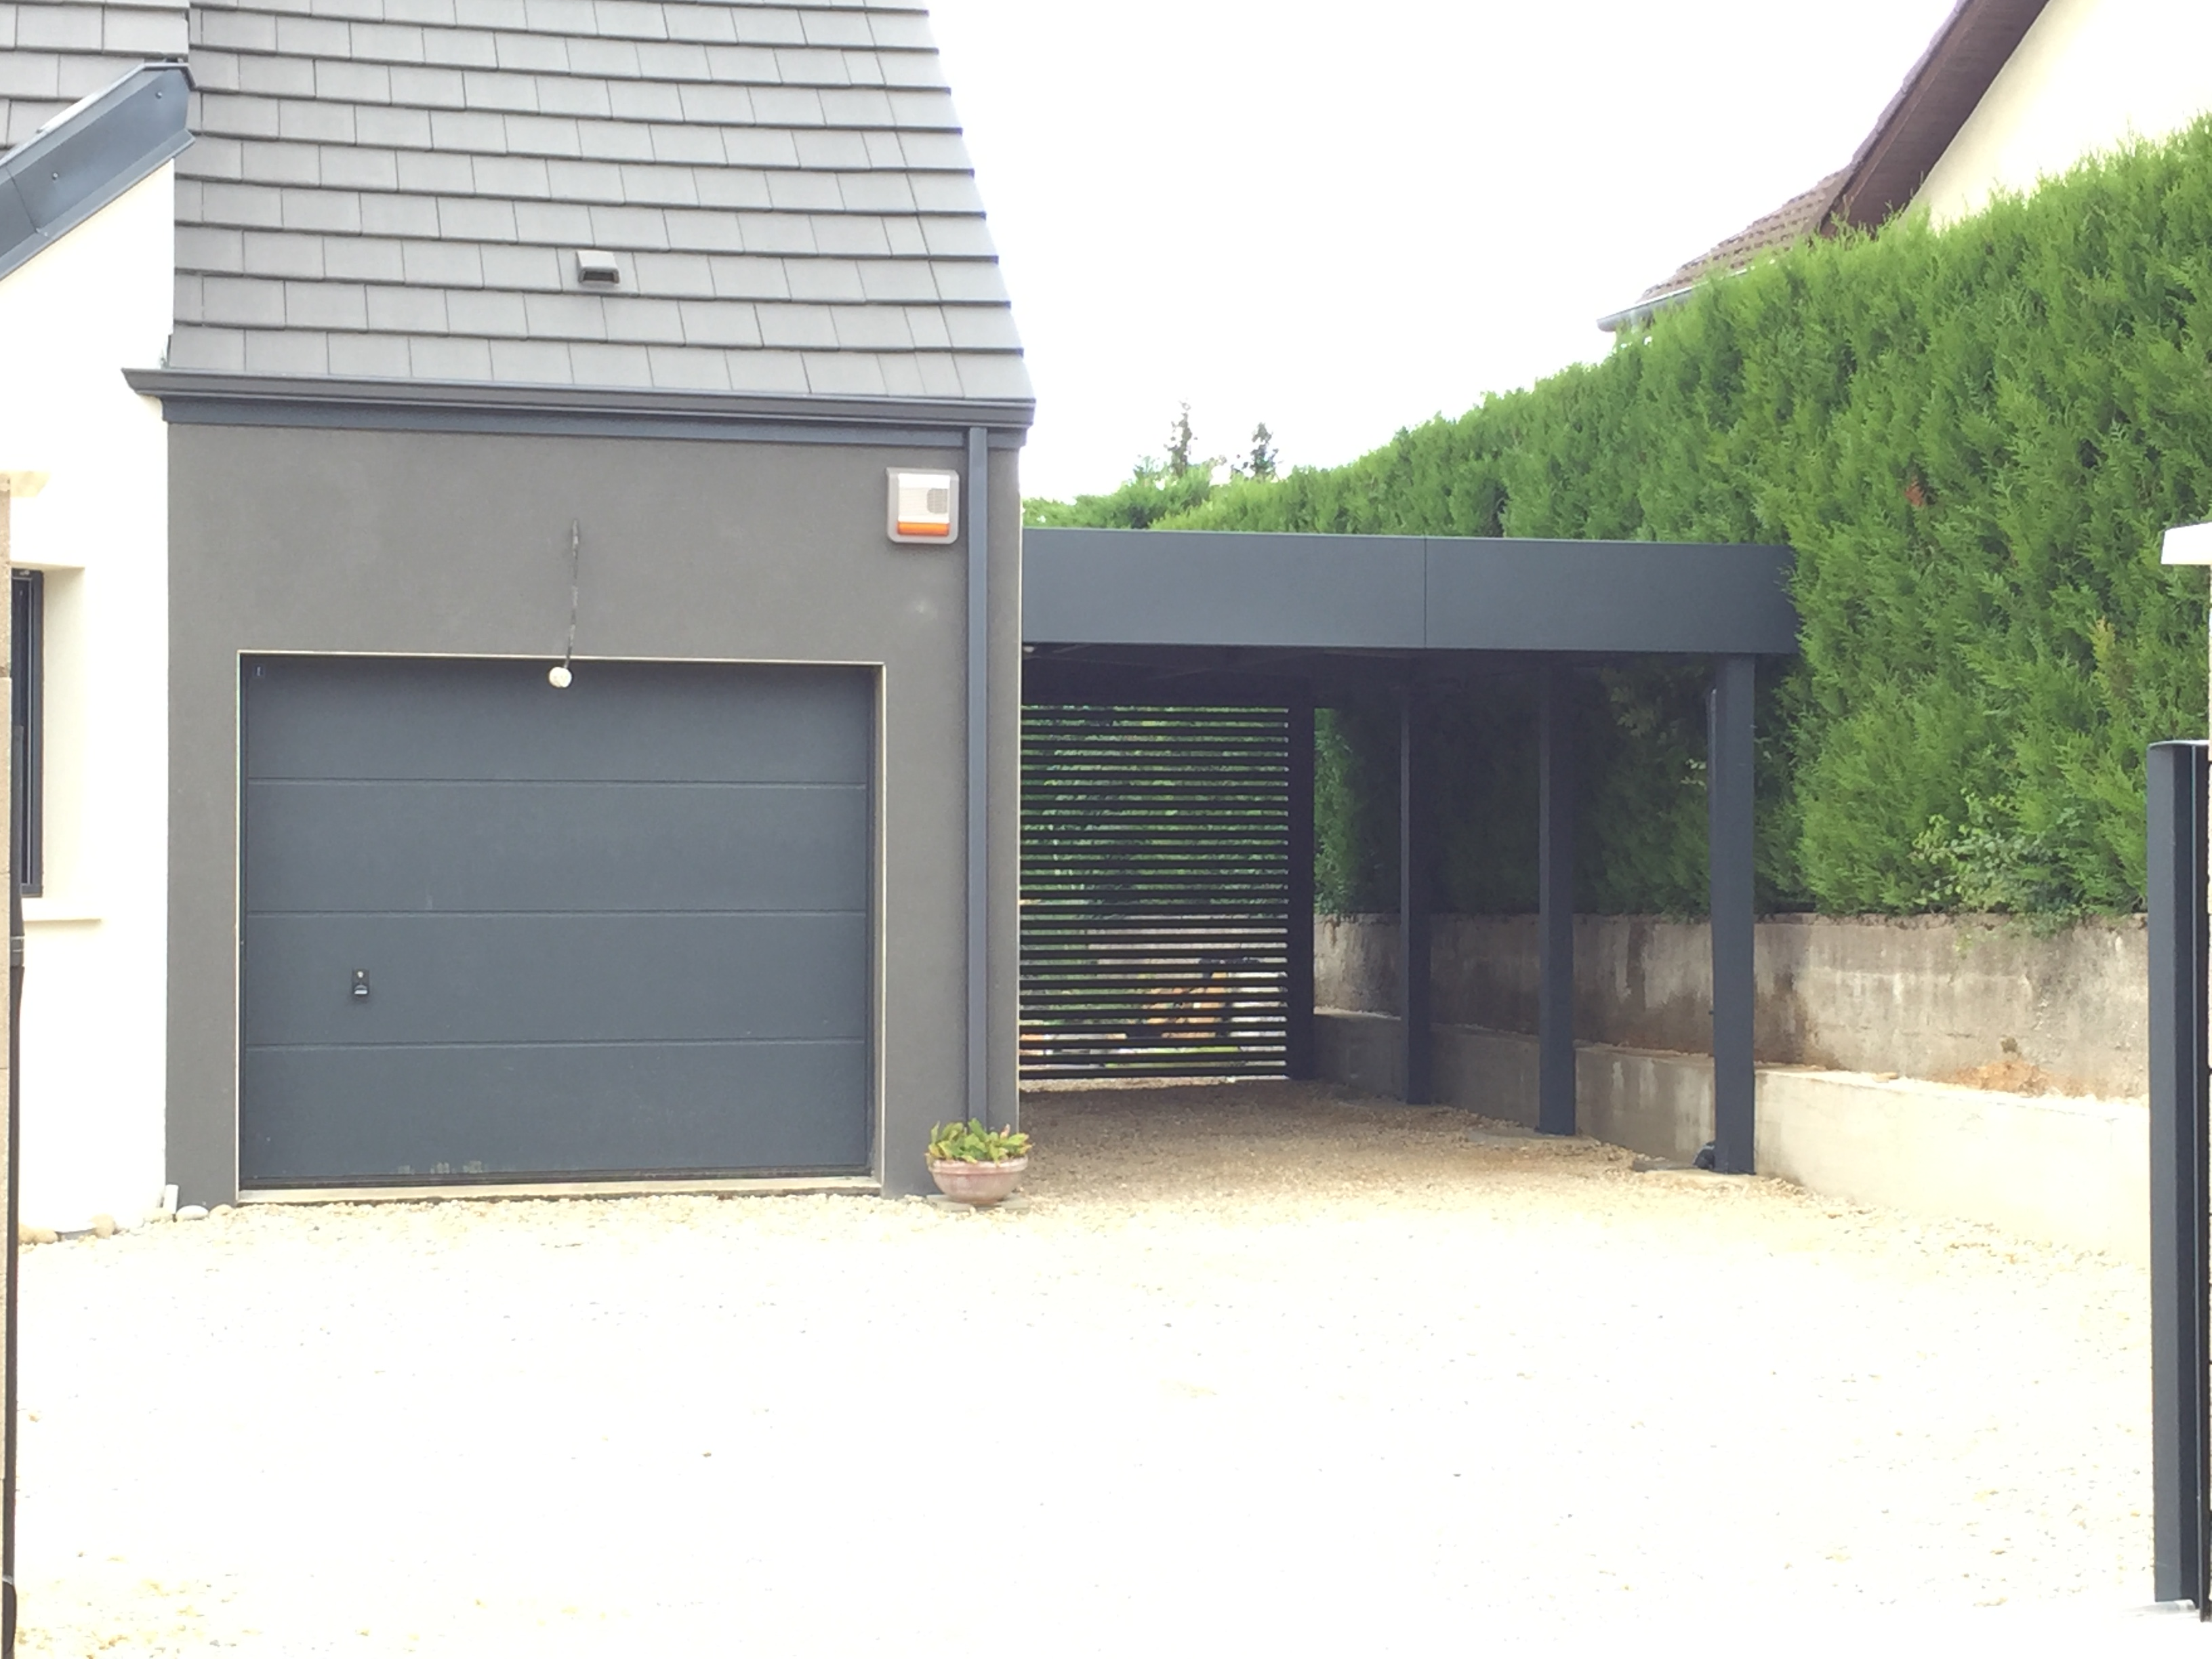 le carport aluminium de la semaine carport. Black Bedroom Furniture Sets. Home Design Ideas